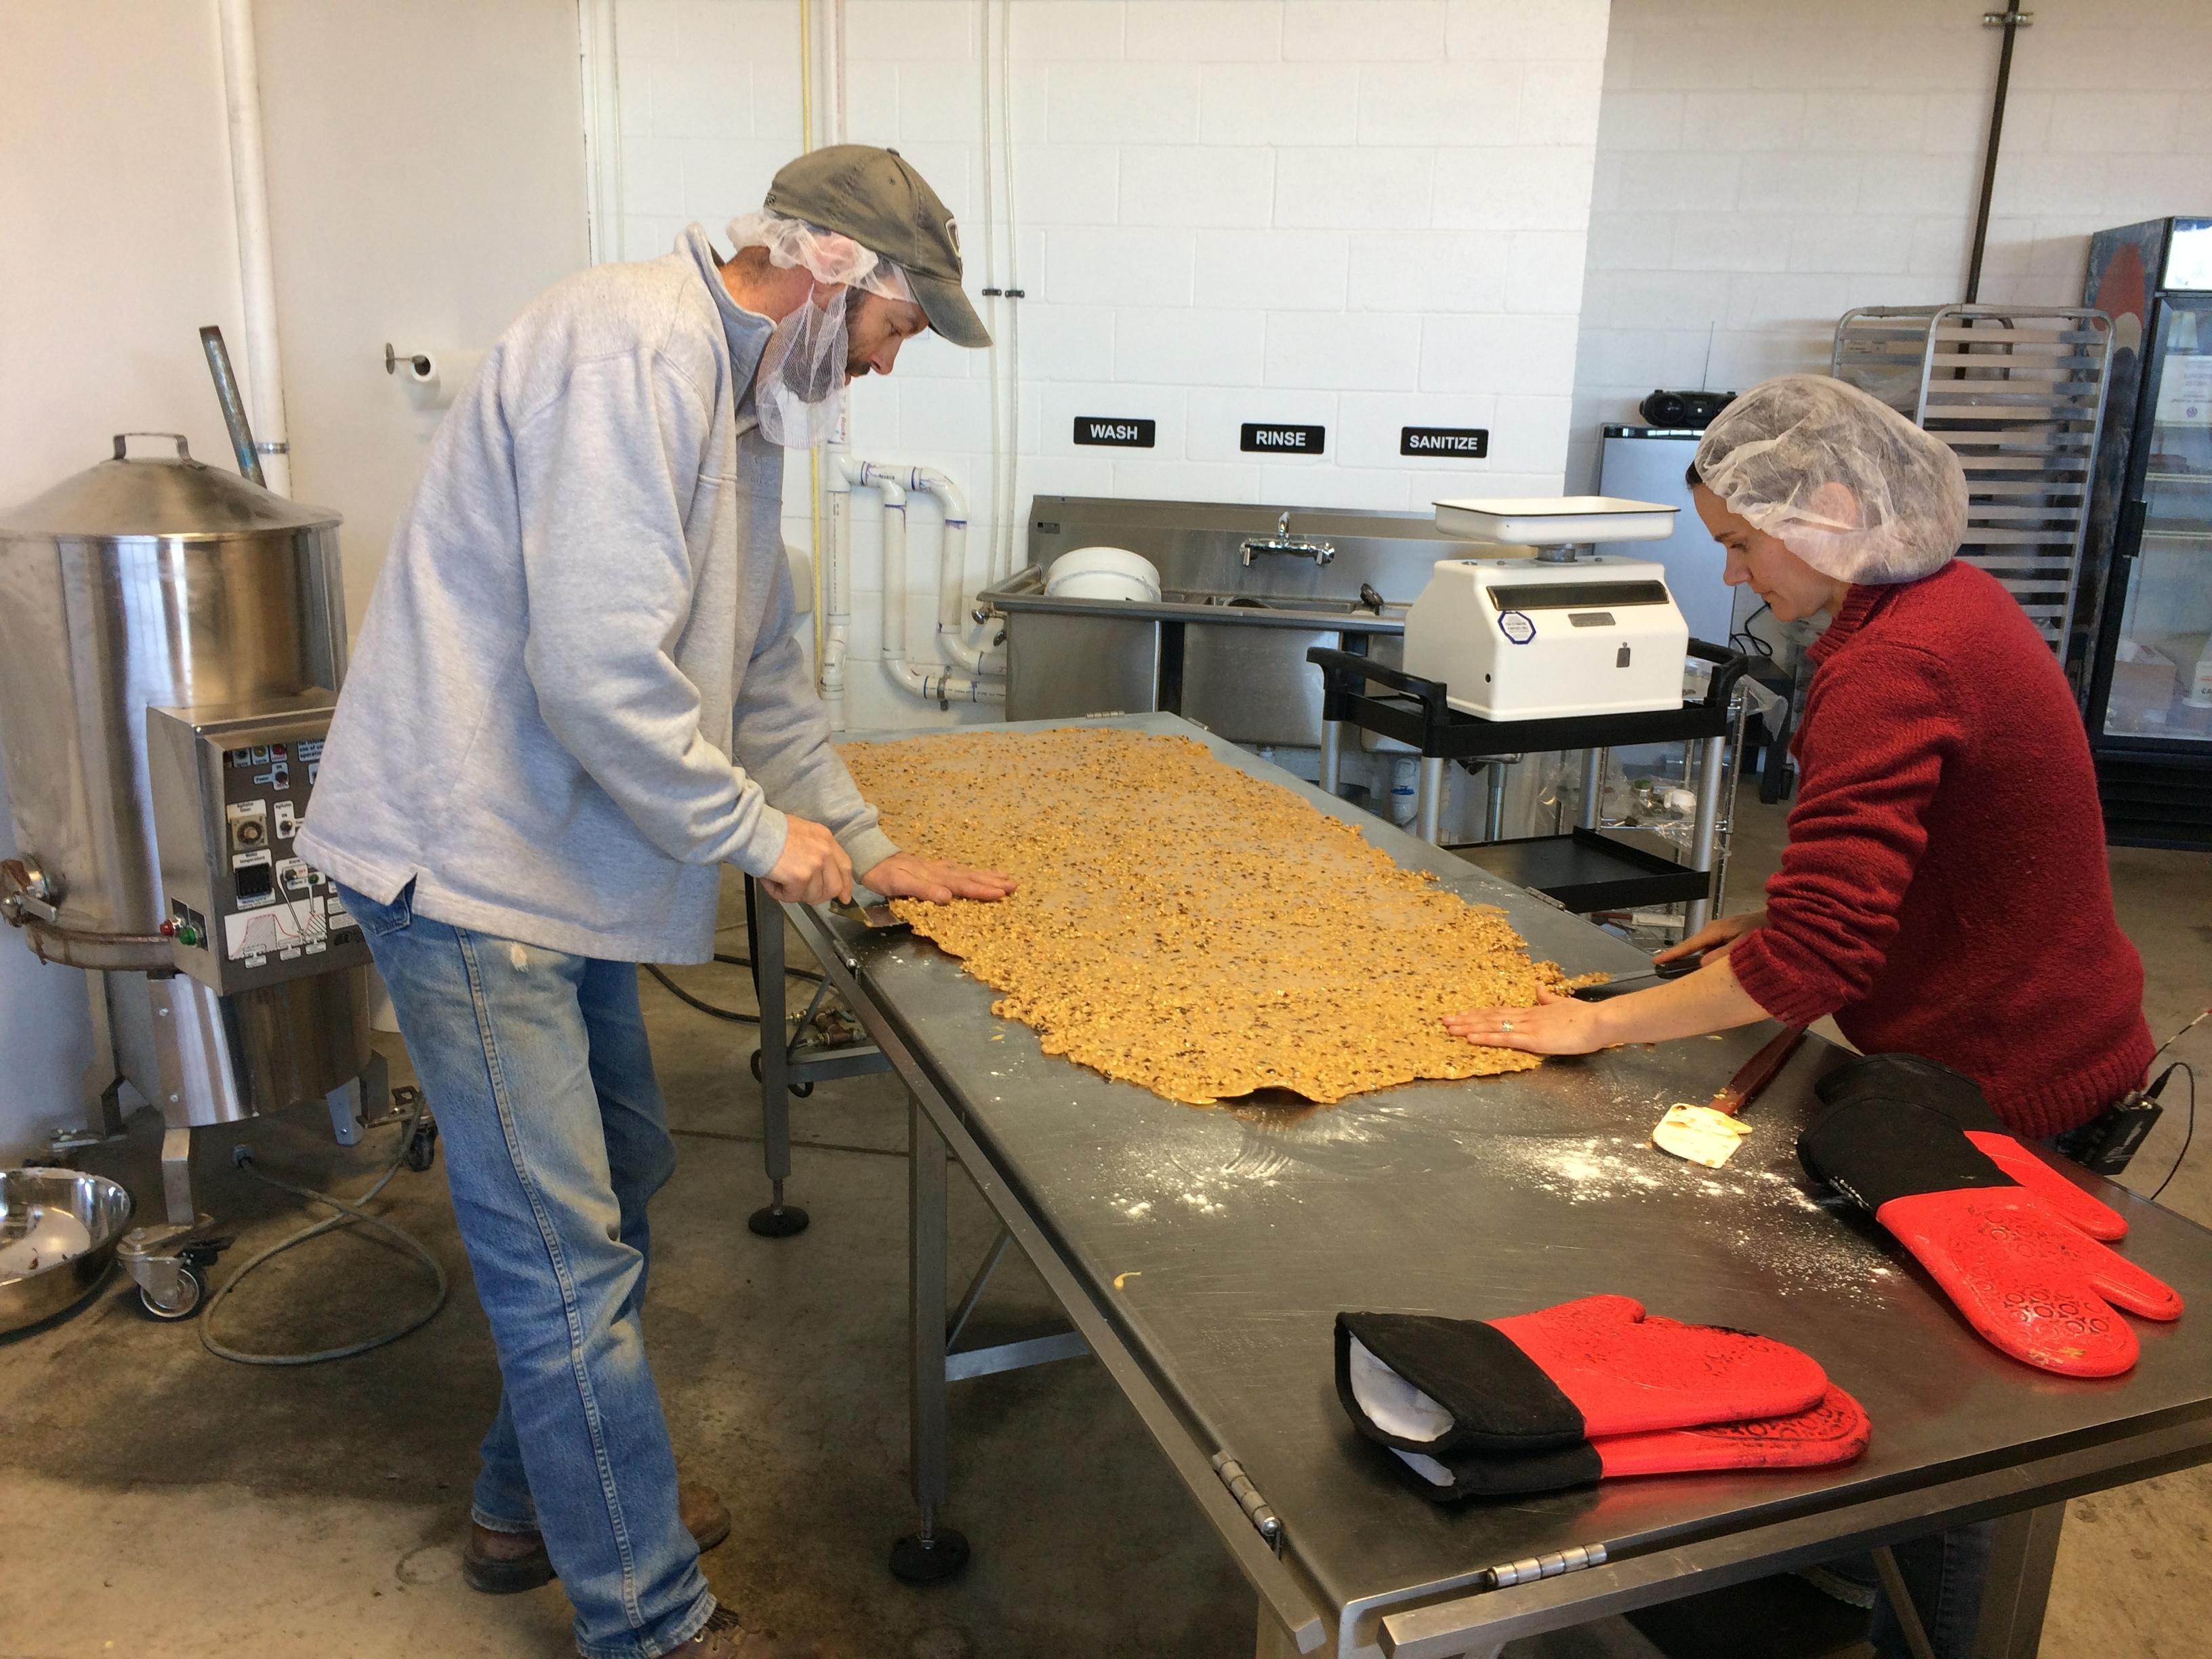 Ryan and Rachel Henderson make hazelnut brittle, toffee and chocolate during their busiest season of the year. Photo by Audrey Weil.<p></p>